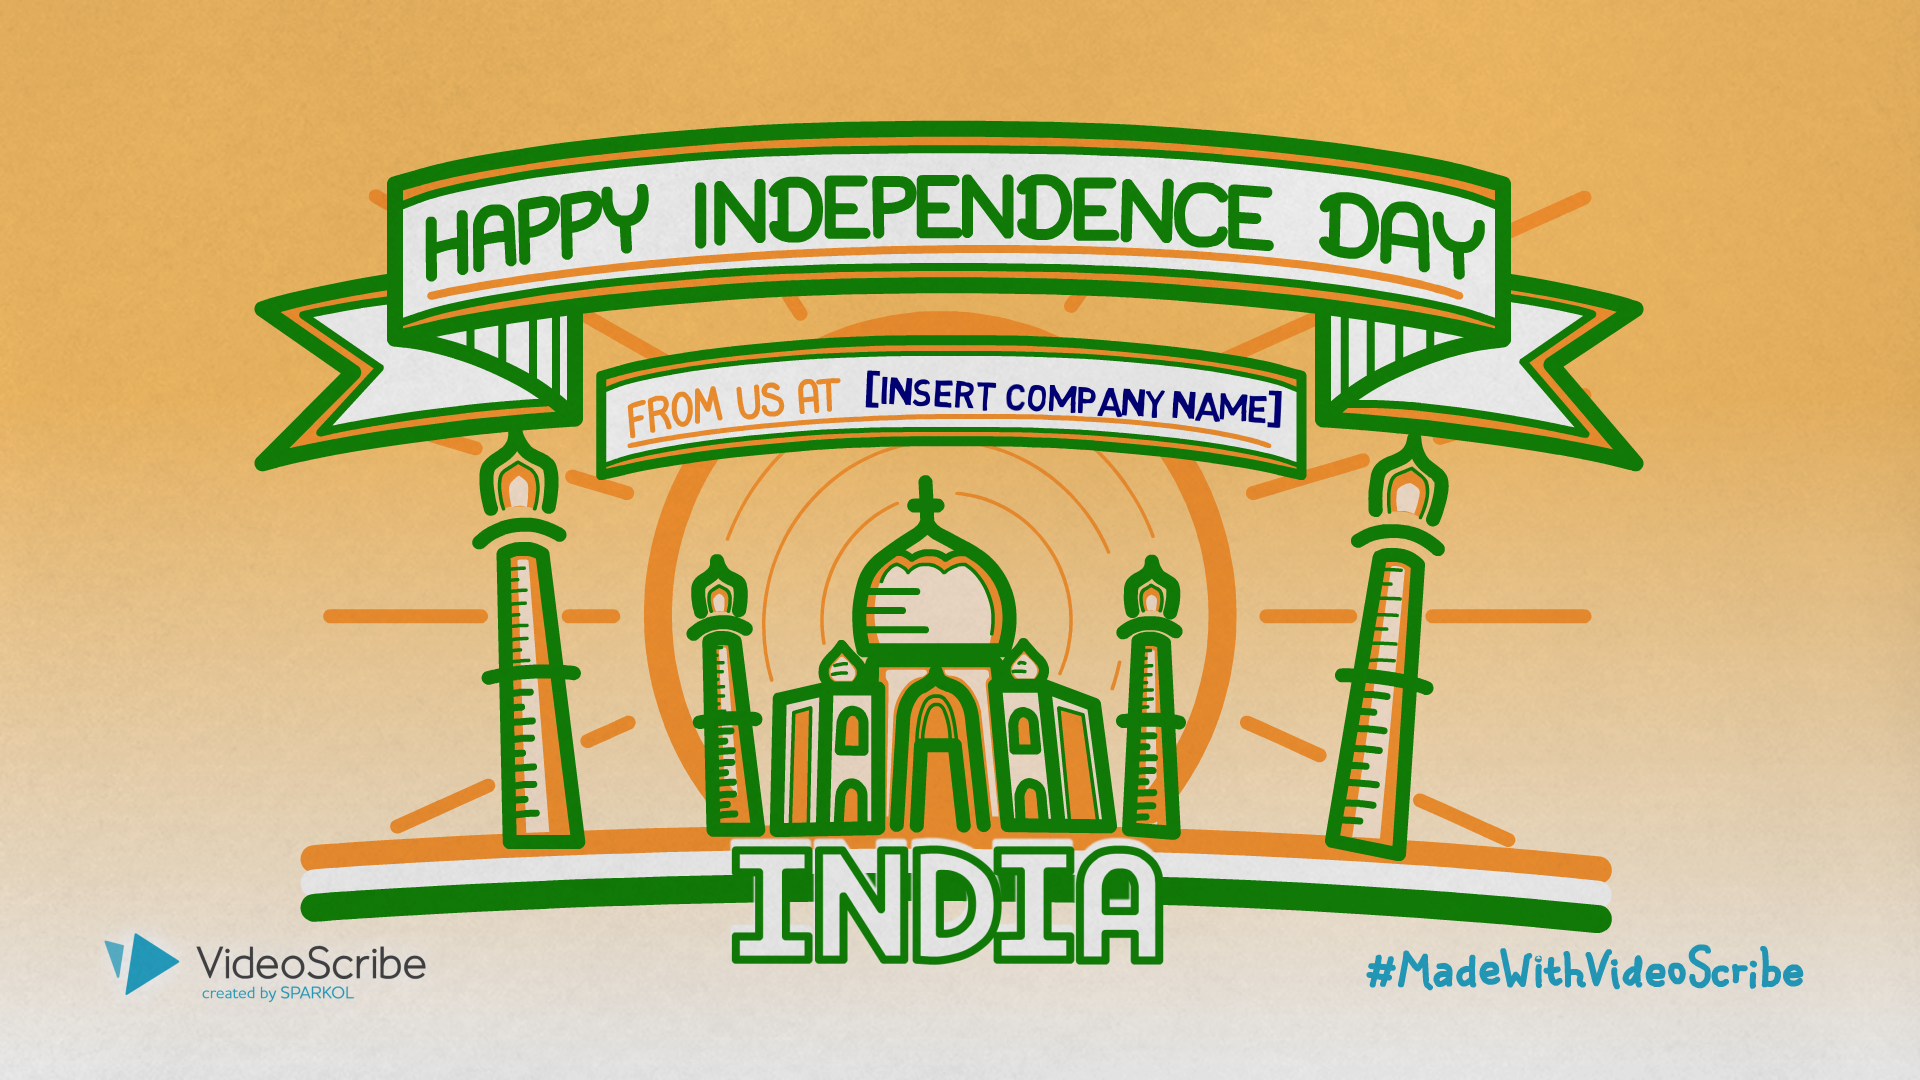 Your customizable 'Happy Indian Independence Day' video template